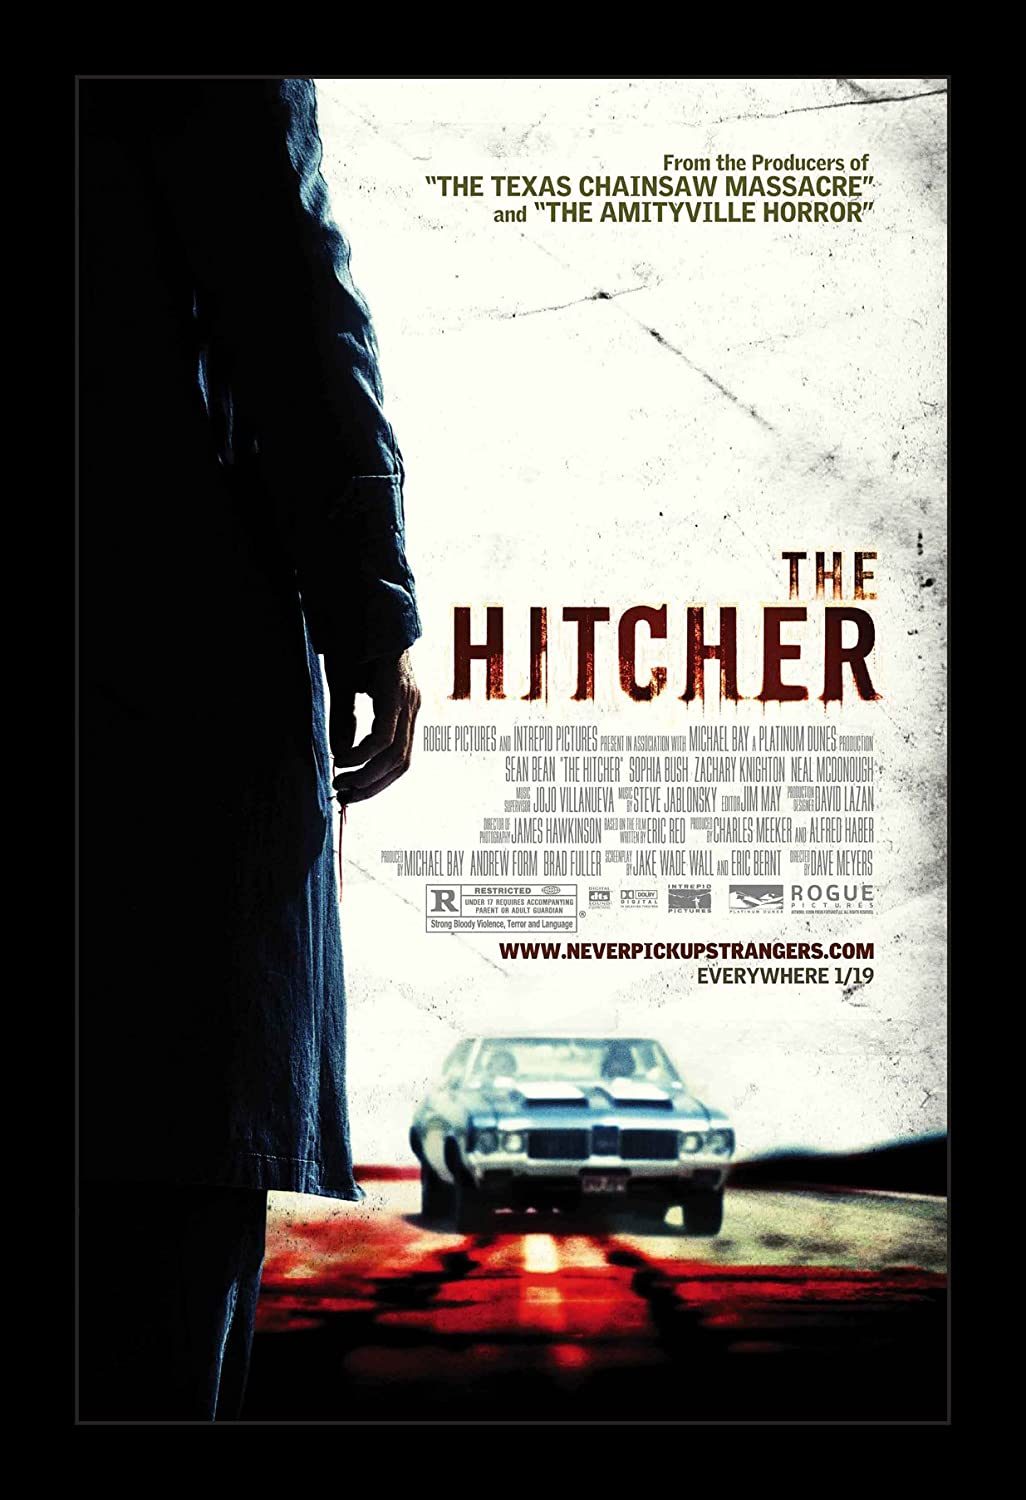 The Hitcher - 11x17 Framed Movie Poster by Wallspace